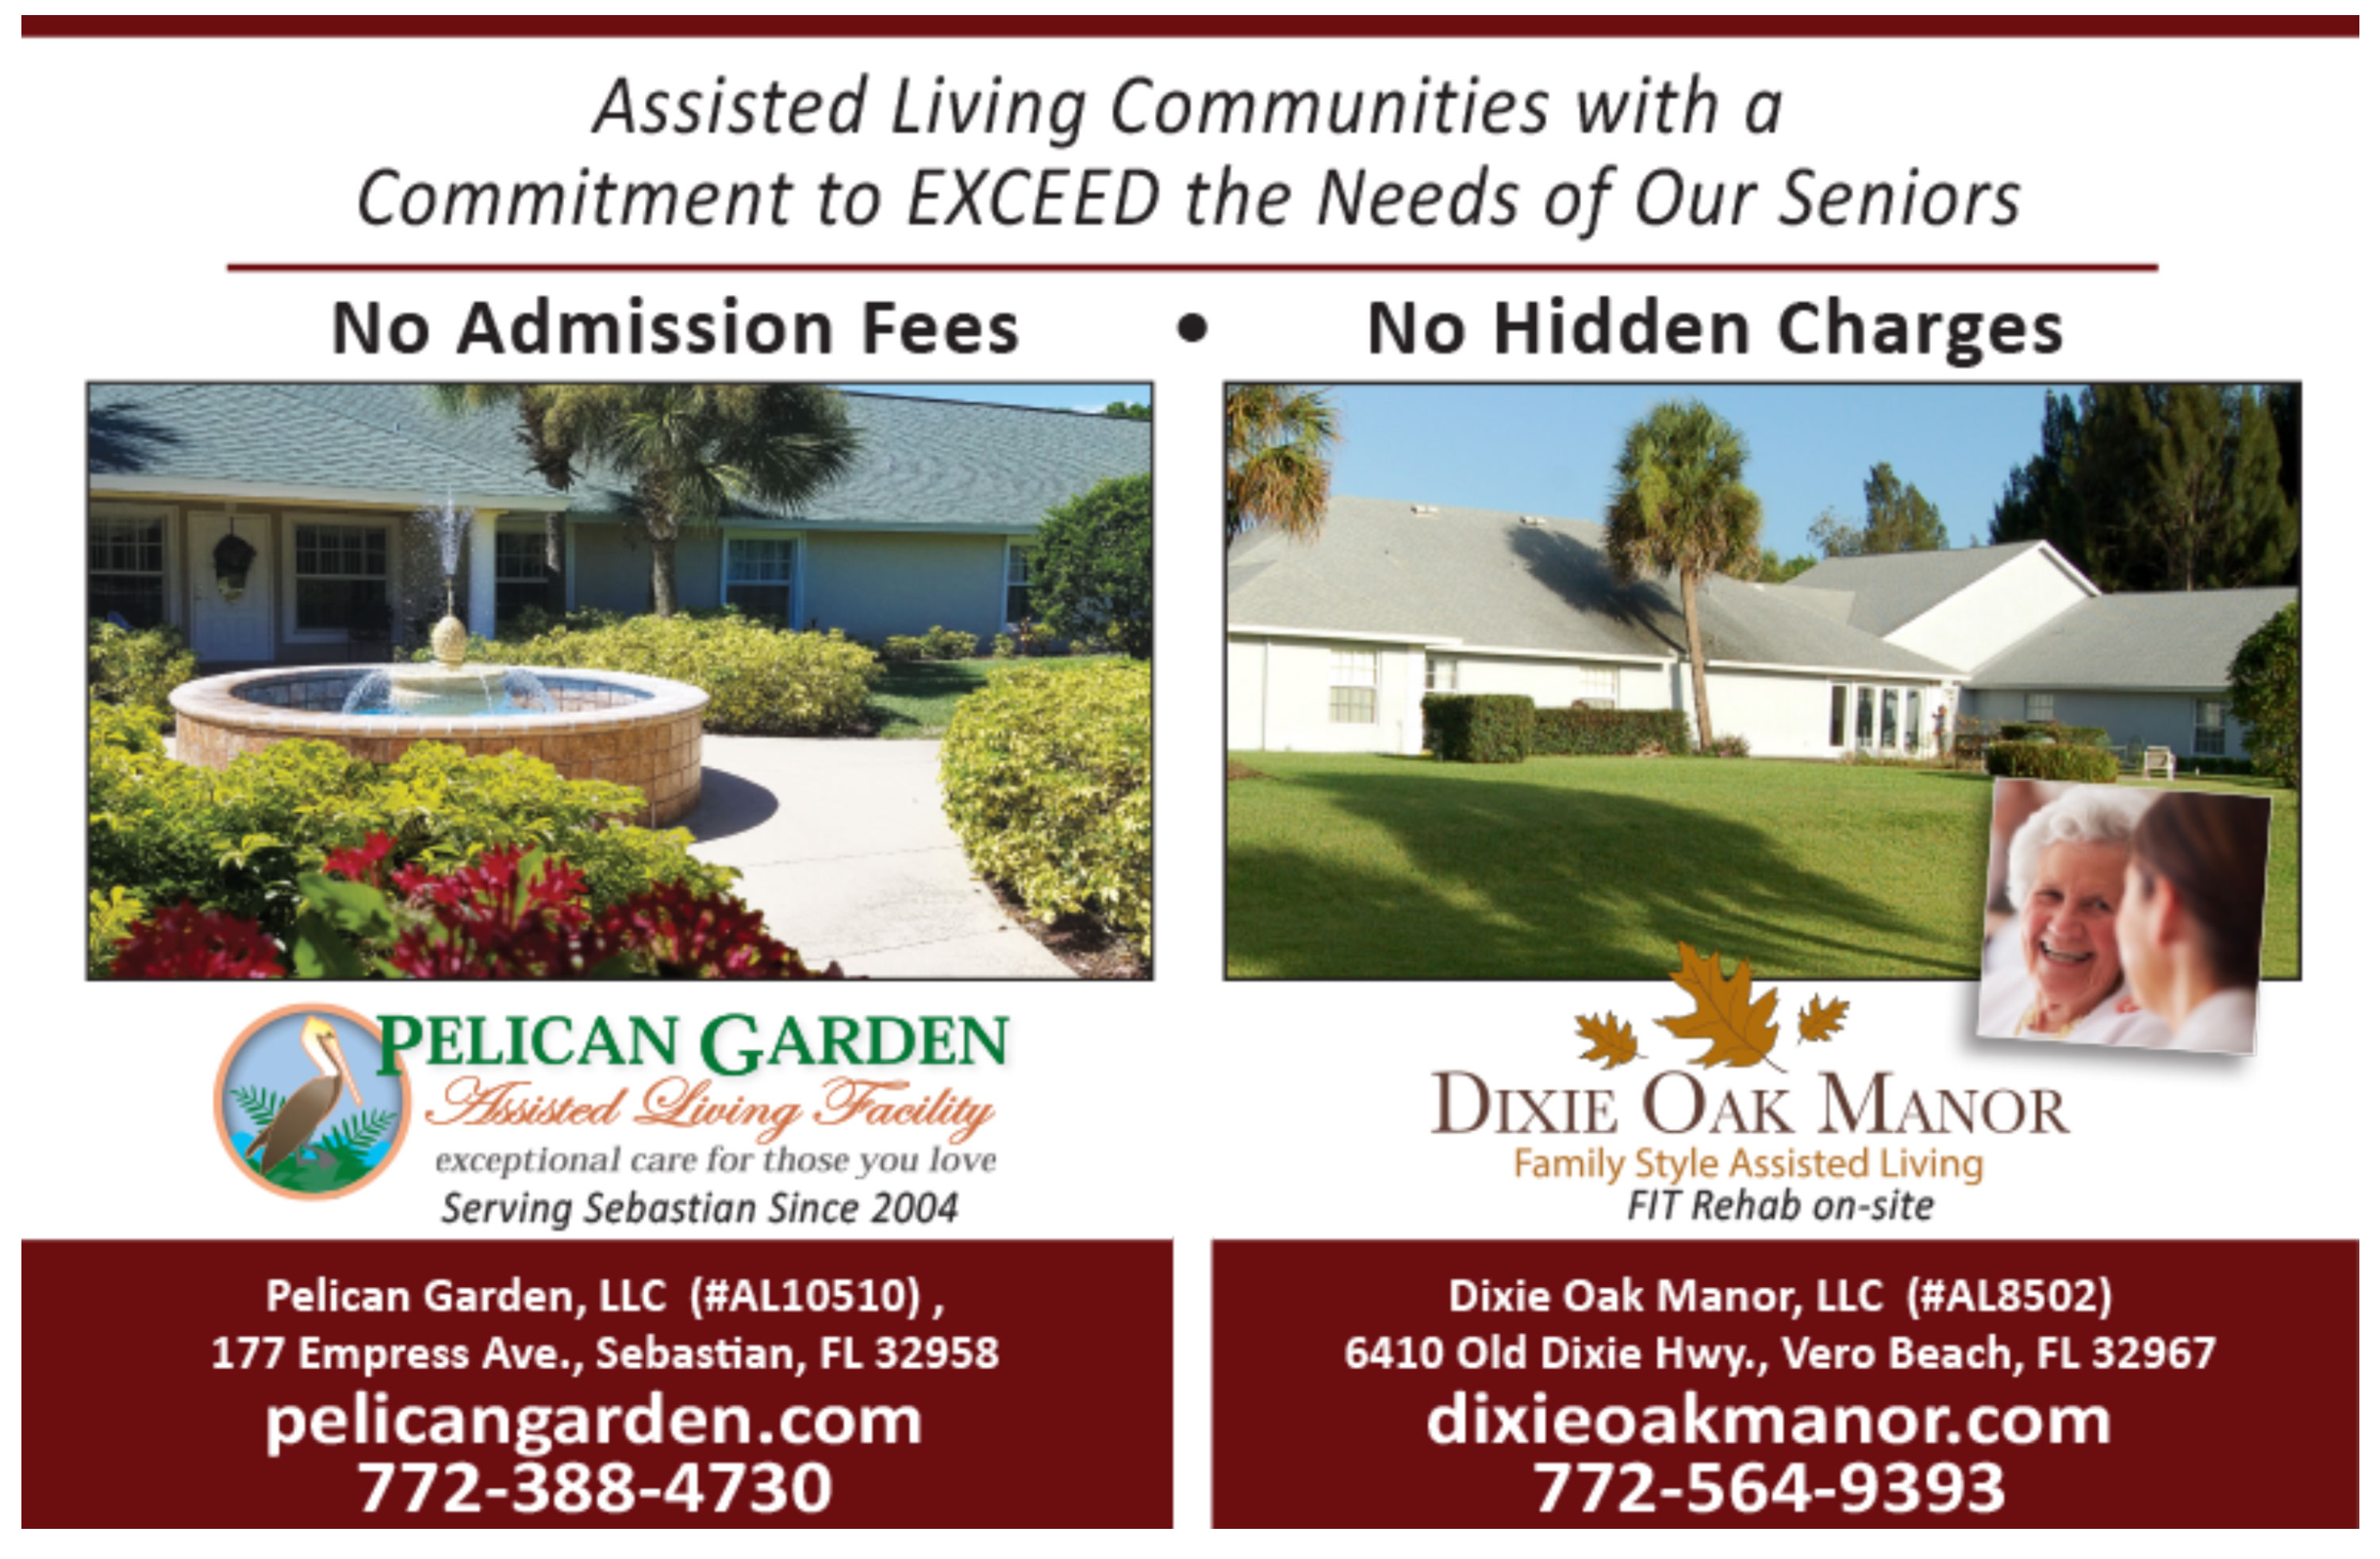 Dixie Oak Manor and Pelican Garden